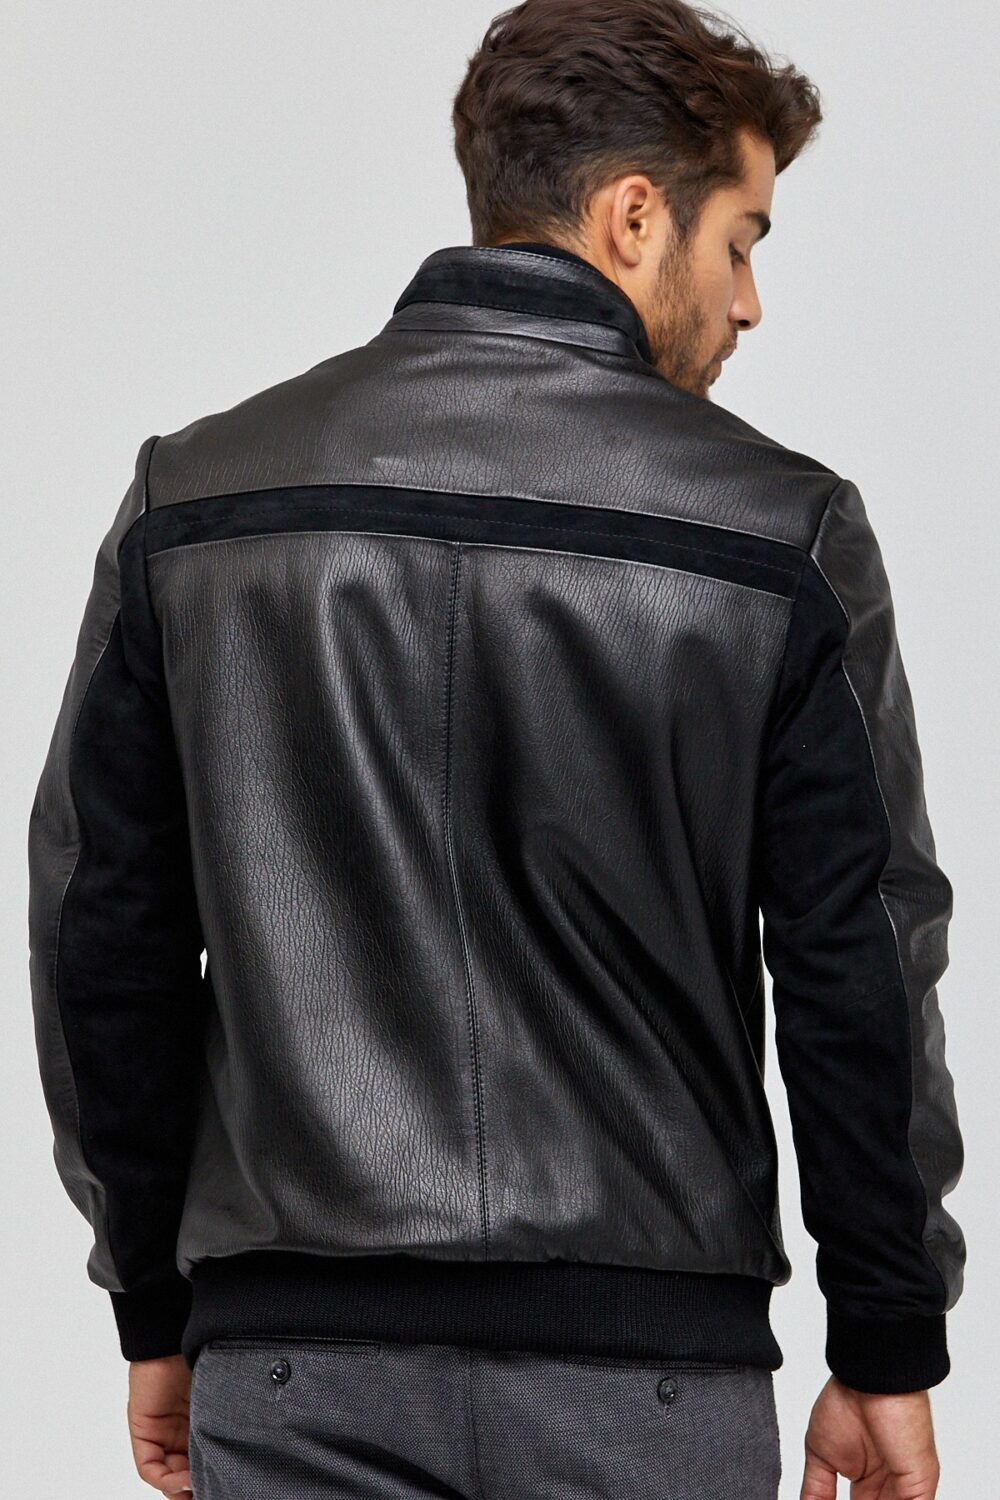 Mens Leather Jackets Windbreaker